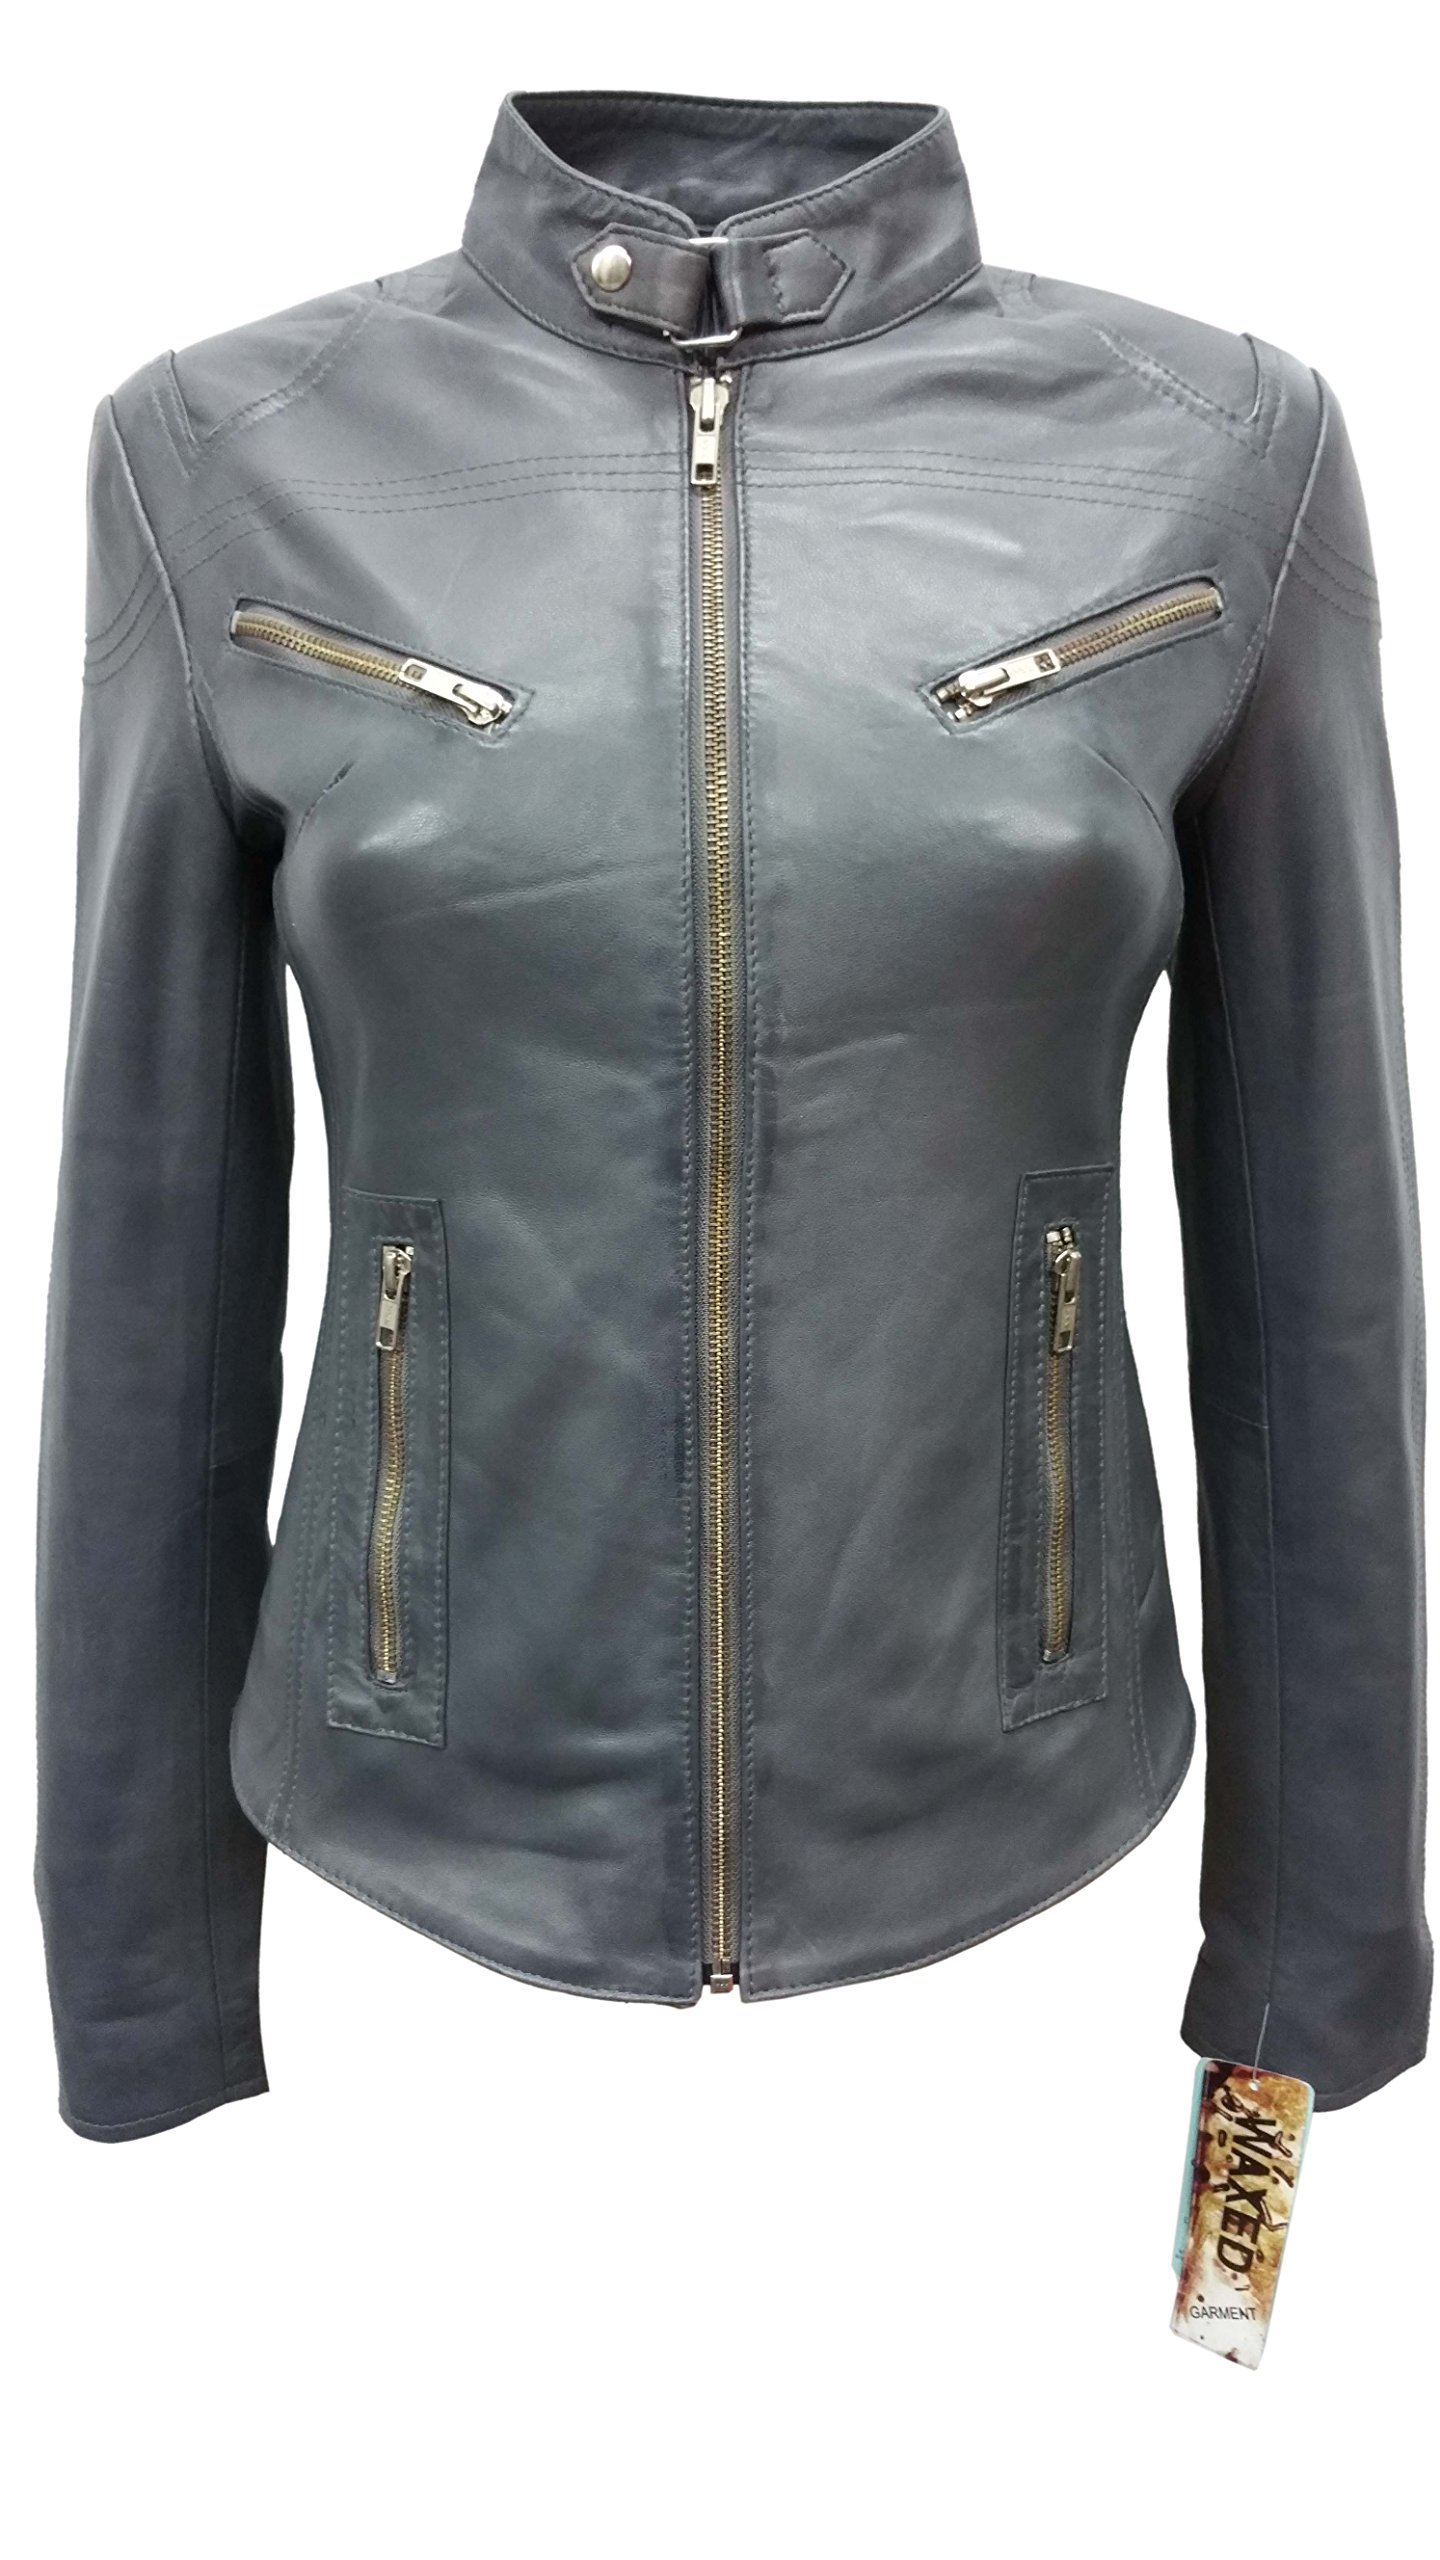 SPEED Ladies Grey Wax Designer Cool Retro Biker Style Motorcycle Leather Jacket (US 8/UK 12) by Smart Range